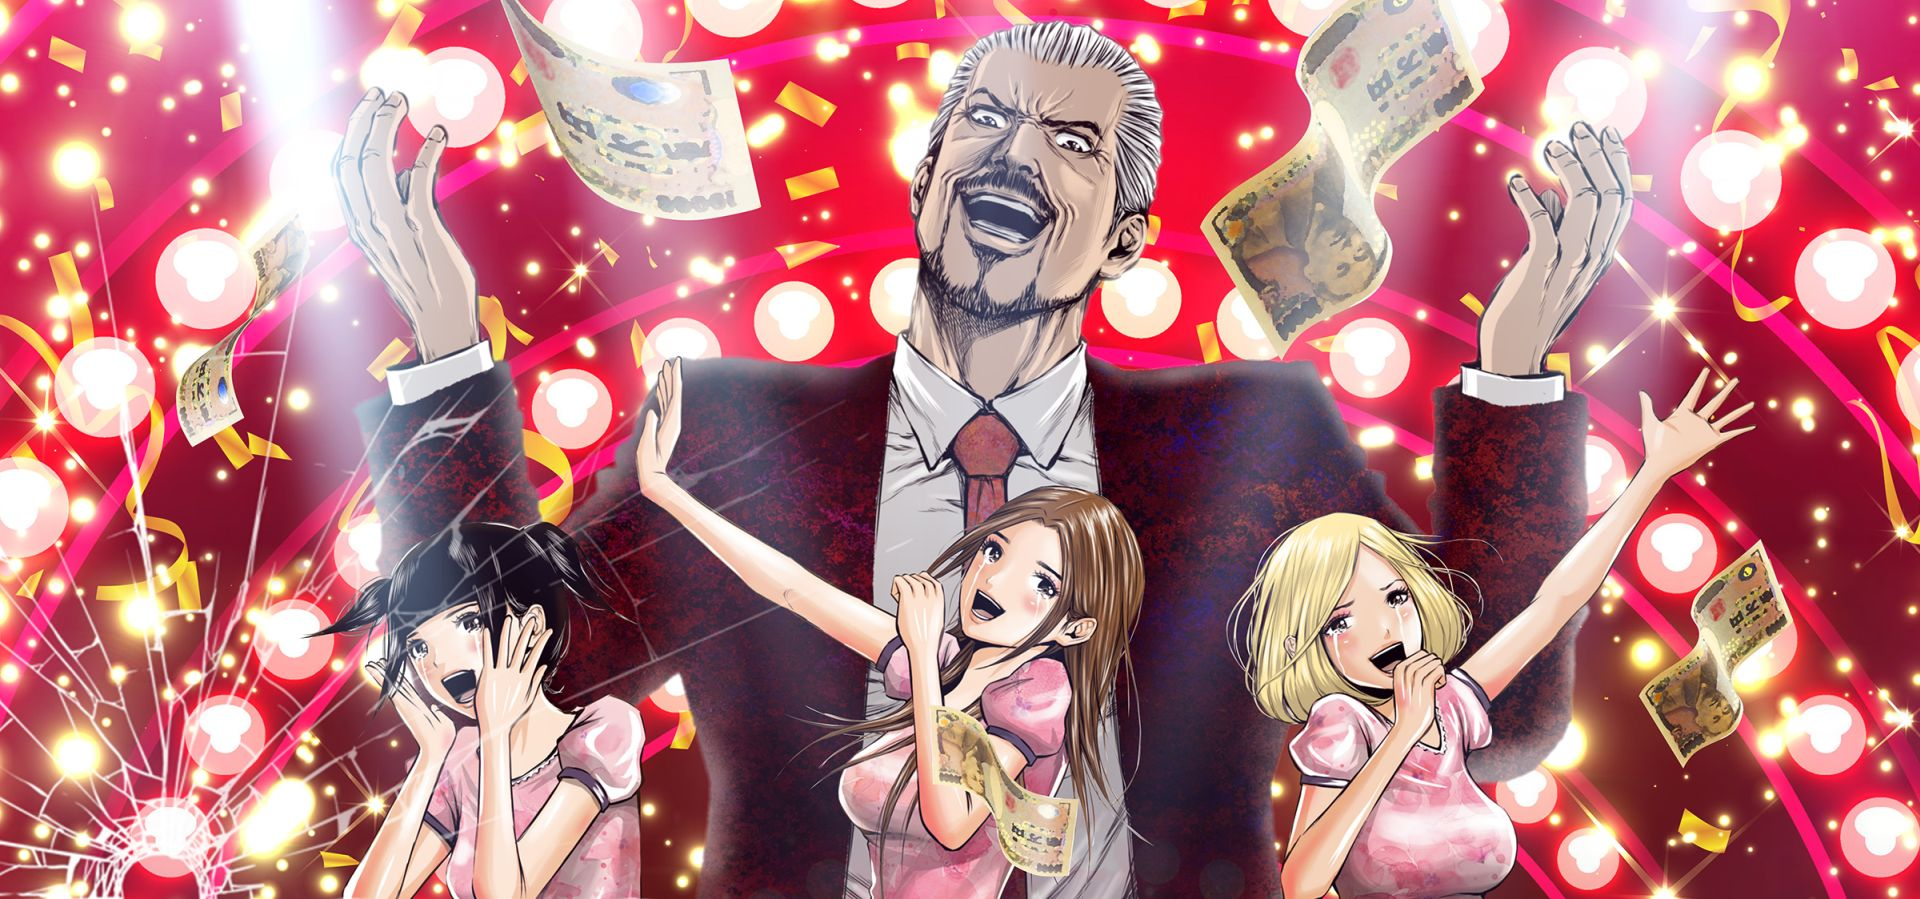 Back street girls is a manga comedy series where three yakuza have to become girl pop idols i will admit ive never read the series but it sounds